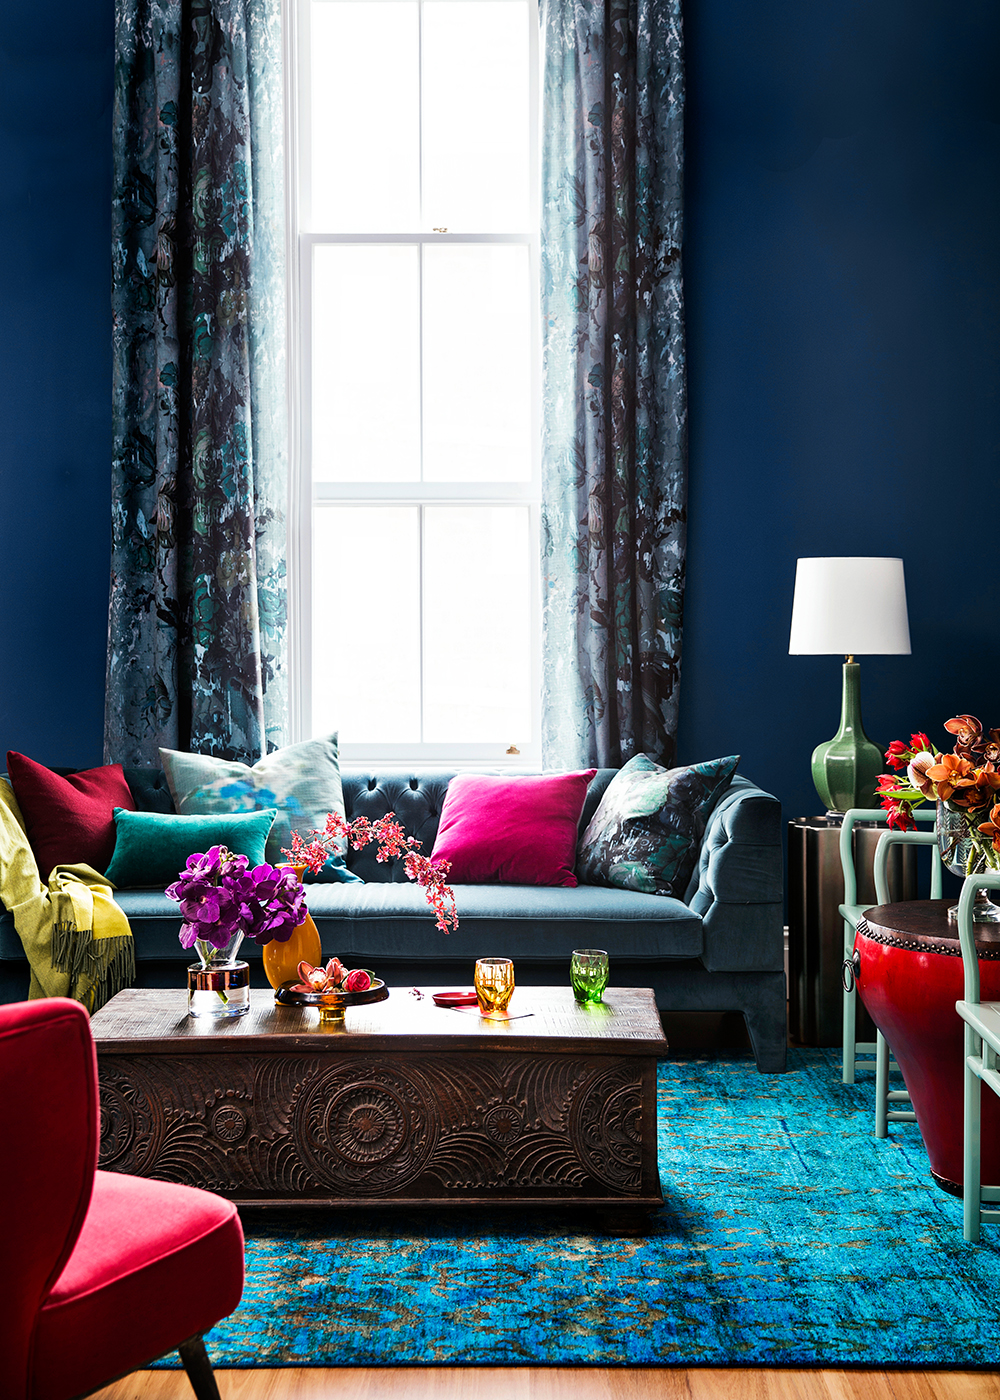 Contemporary living room walls painted in Dulux Passionate Blue. Via Home Beautiful